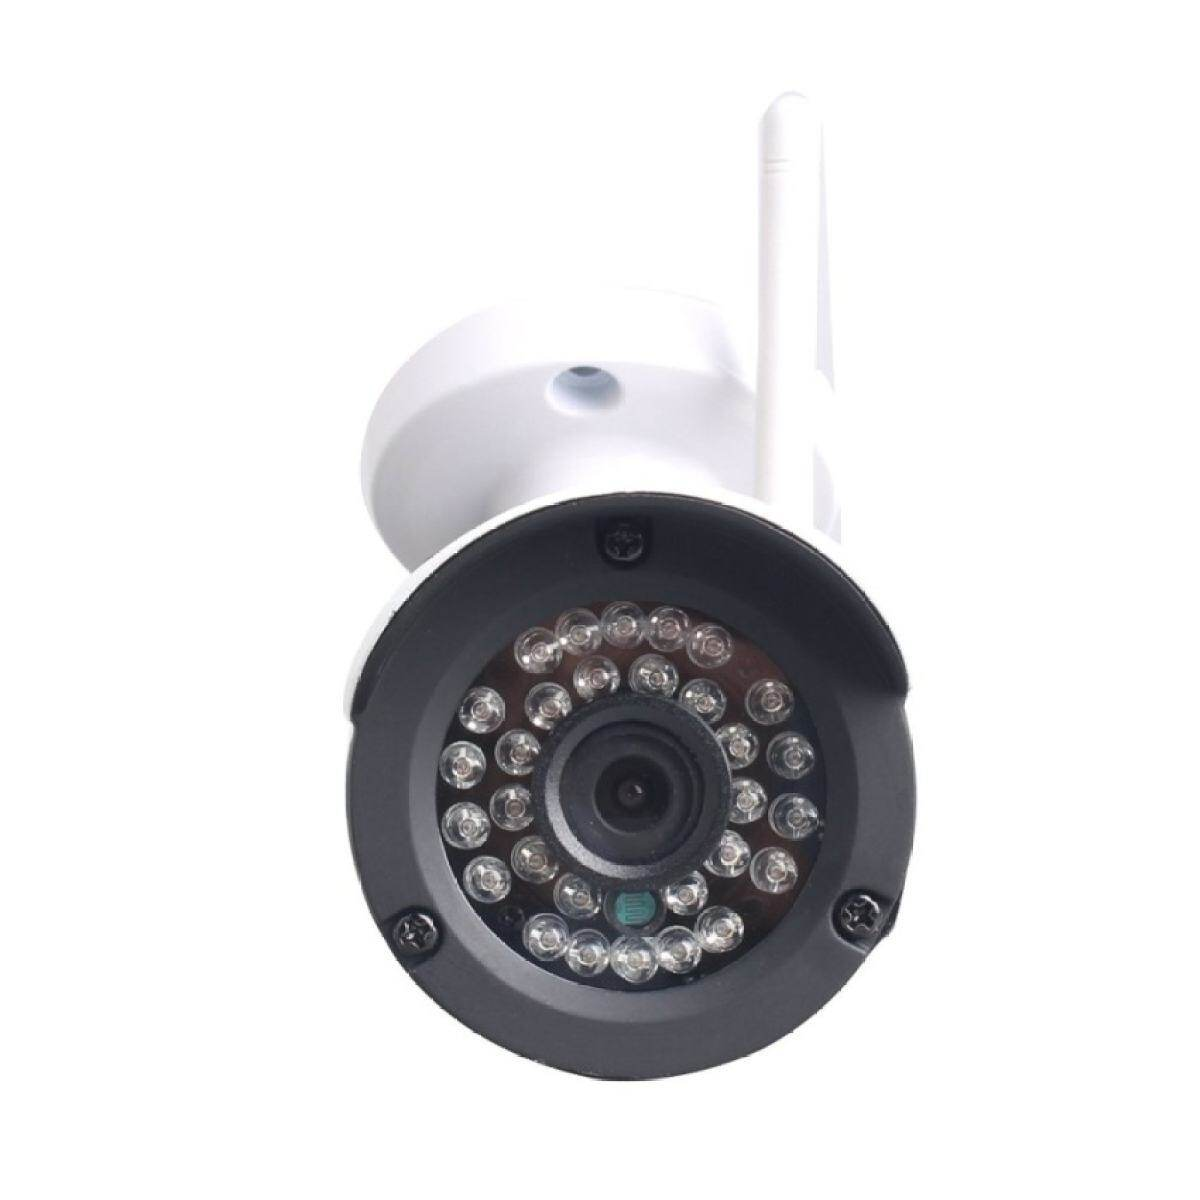 Z-BEN-IR53 960P/1.3MP AHD Camera.30Meter Night Vision Security Camera.3.6mm Lens 36pcs Leds CCTV Camera w/ IR CUT. Only Work w/ AHD Hybrid DVR(Aluminum Alloy White)